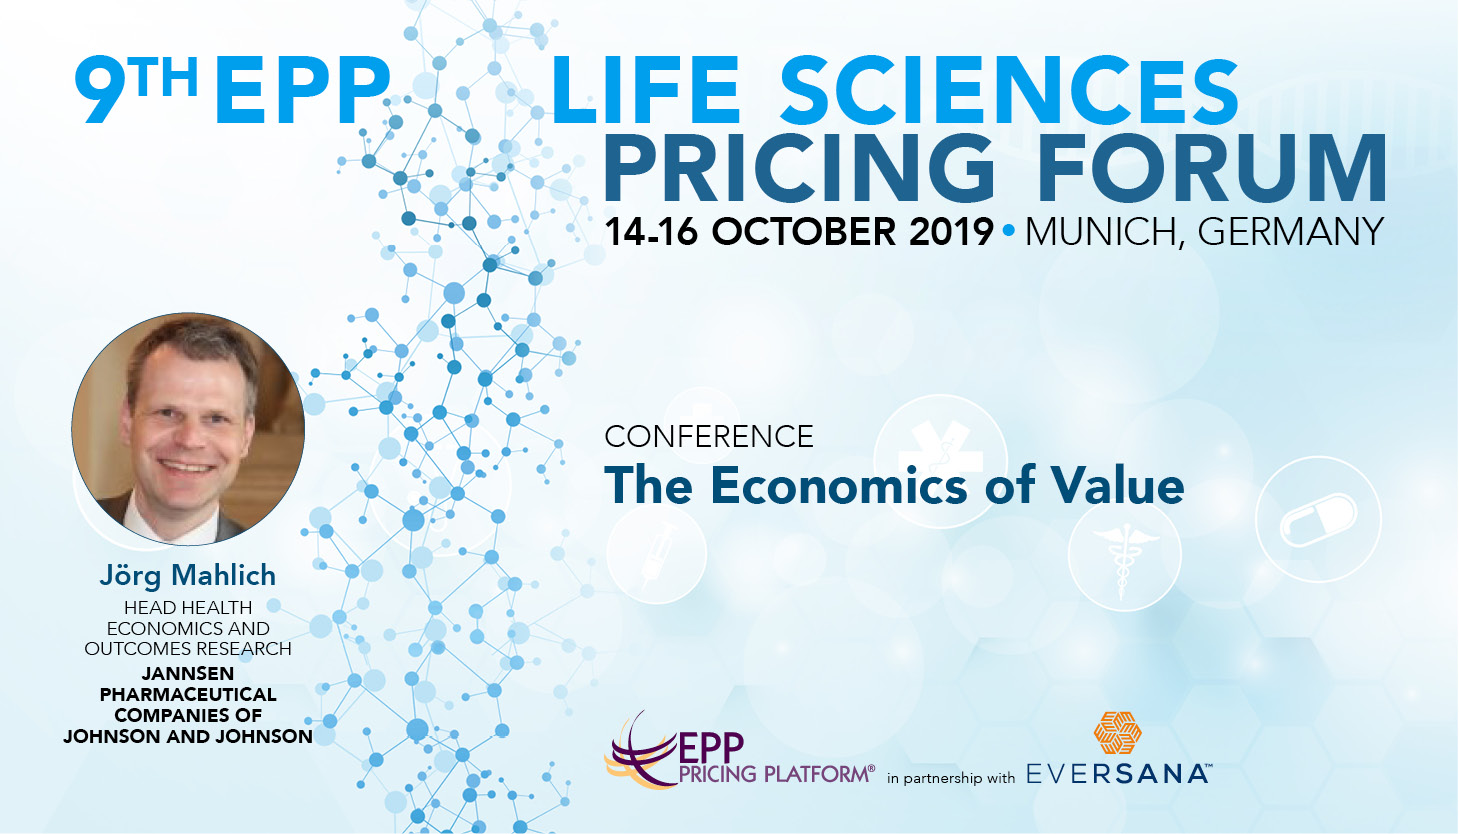 The Economics of Value